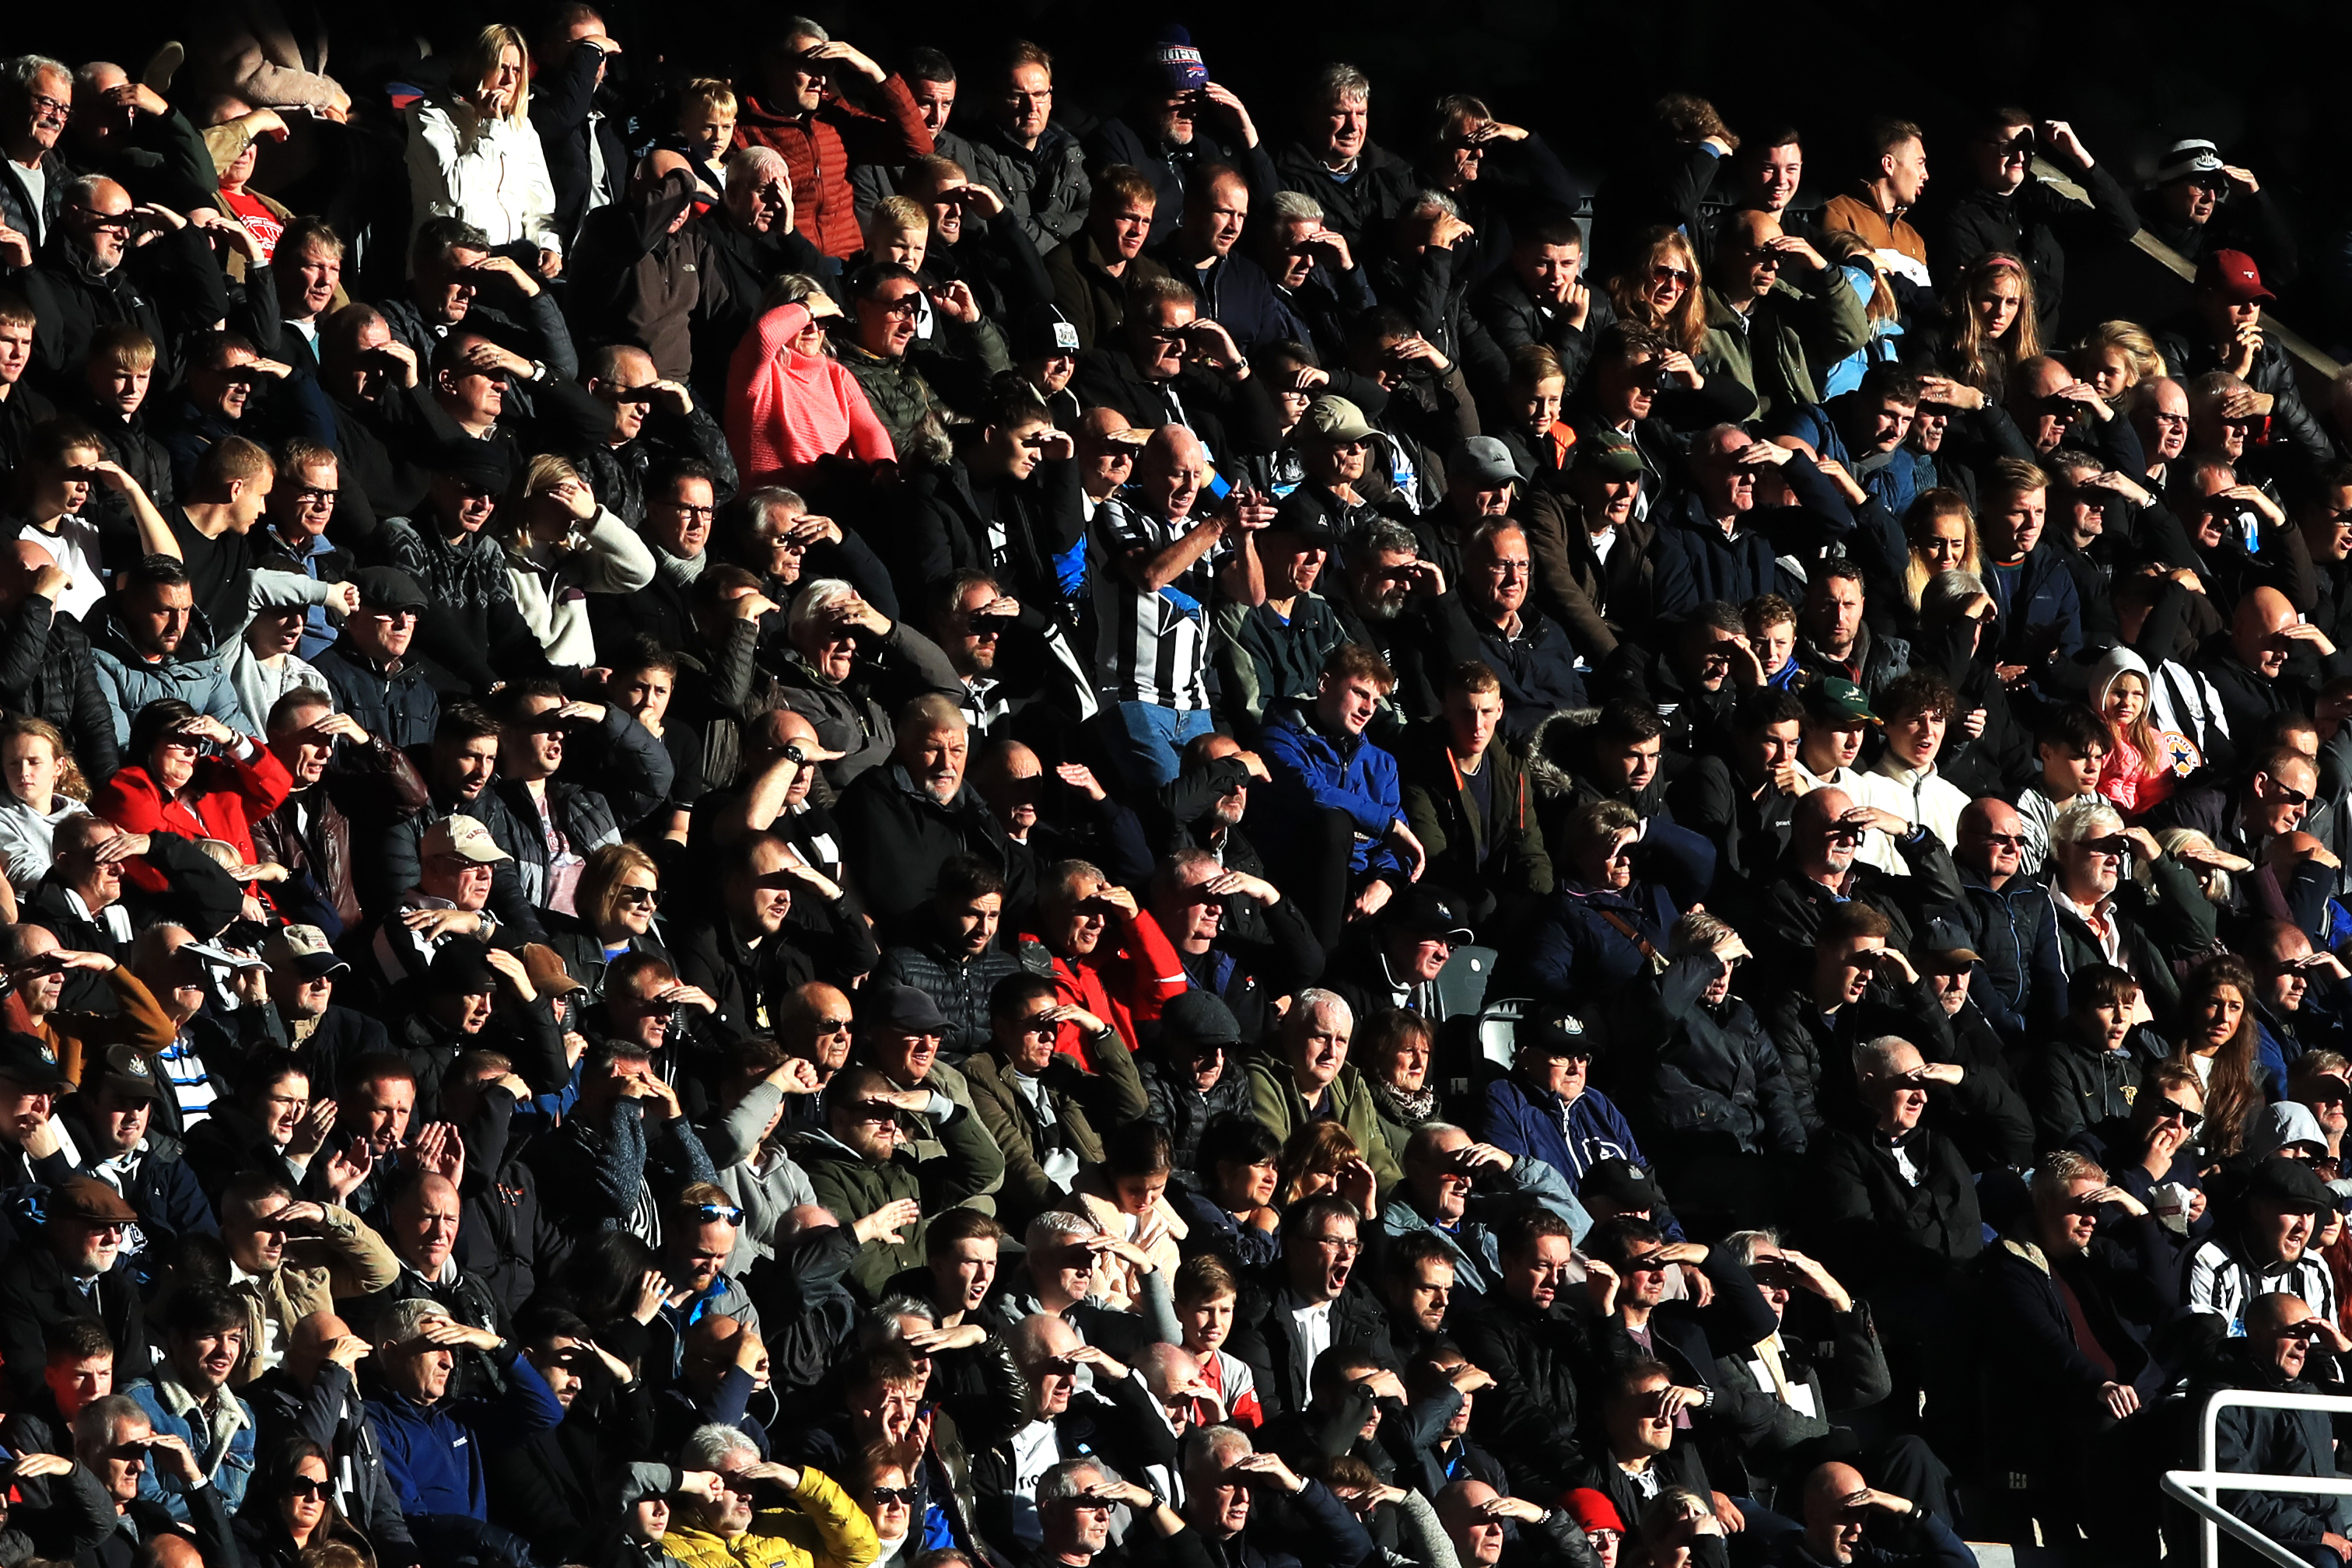 It costs to watch London clubs like Arsenal, Spurs and Chelsea